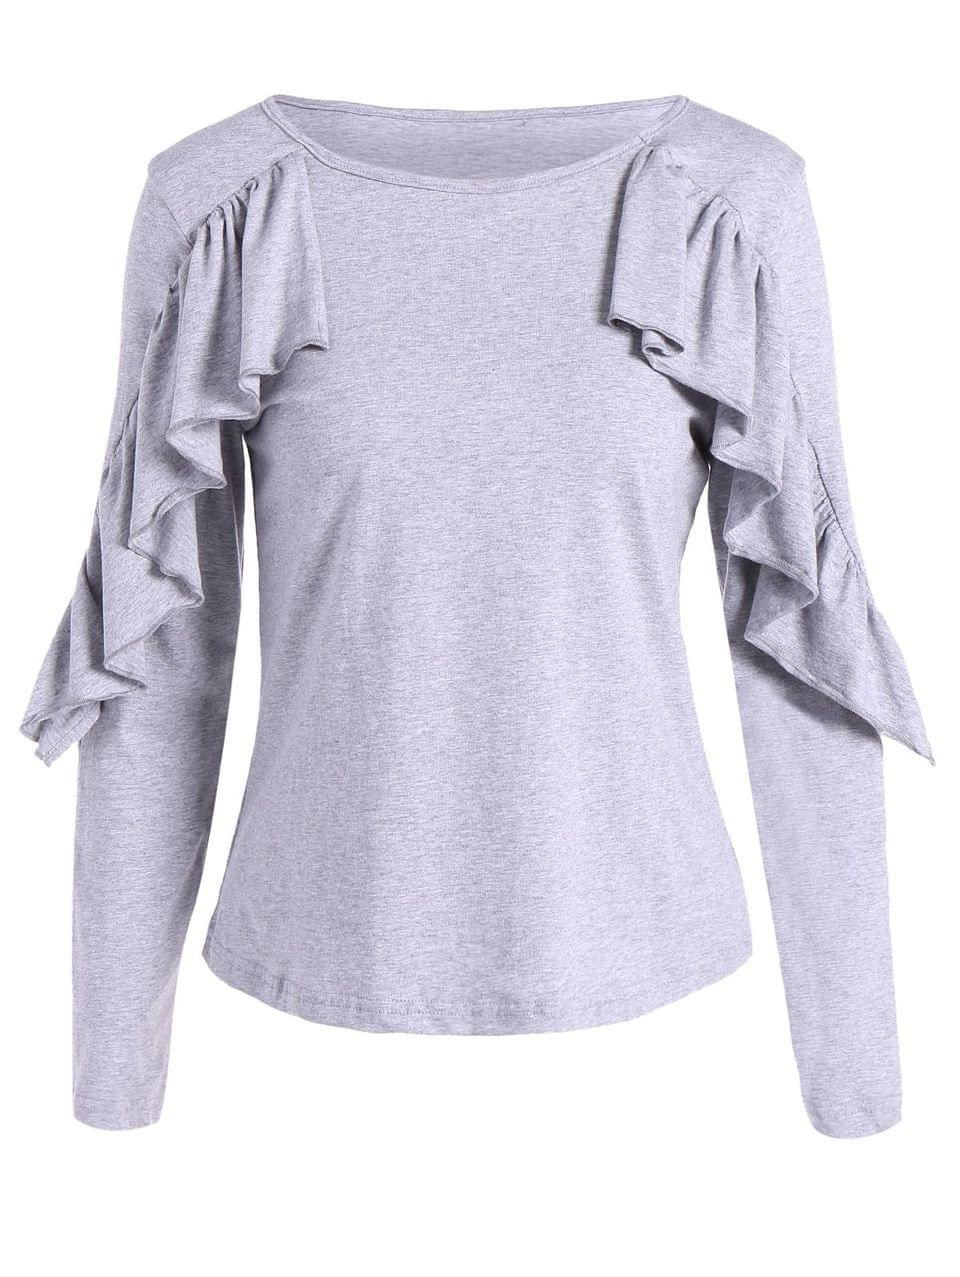 Women's Long Sleeve Frill T-Shirt - Gray L